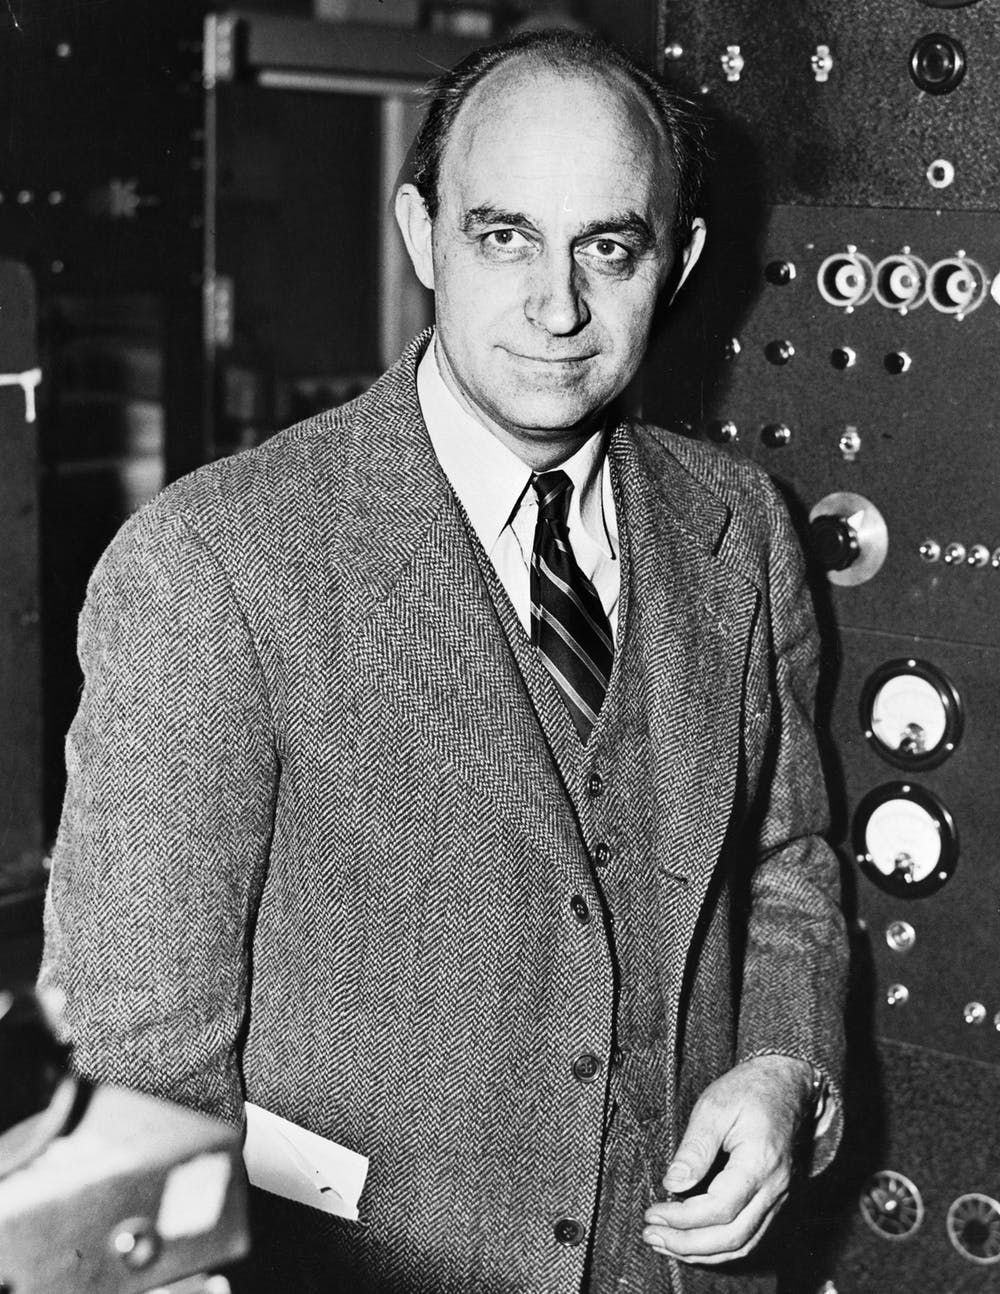 Nobel Prize winner Enrico Fermi led the project